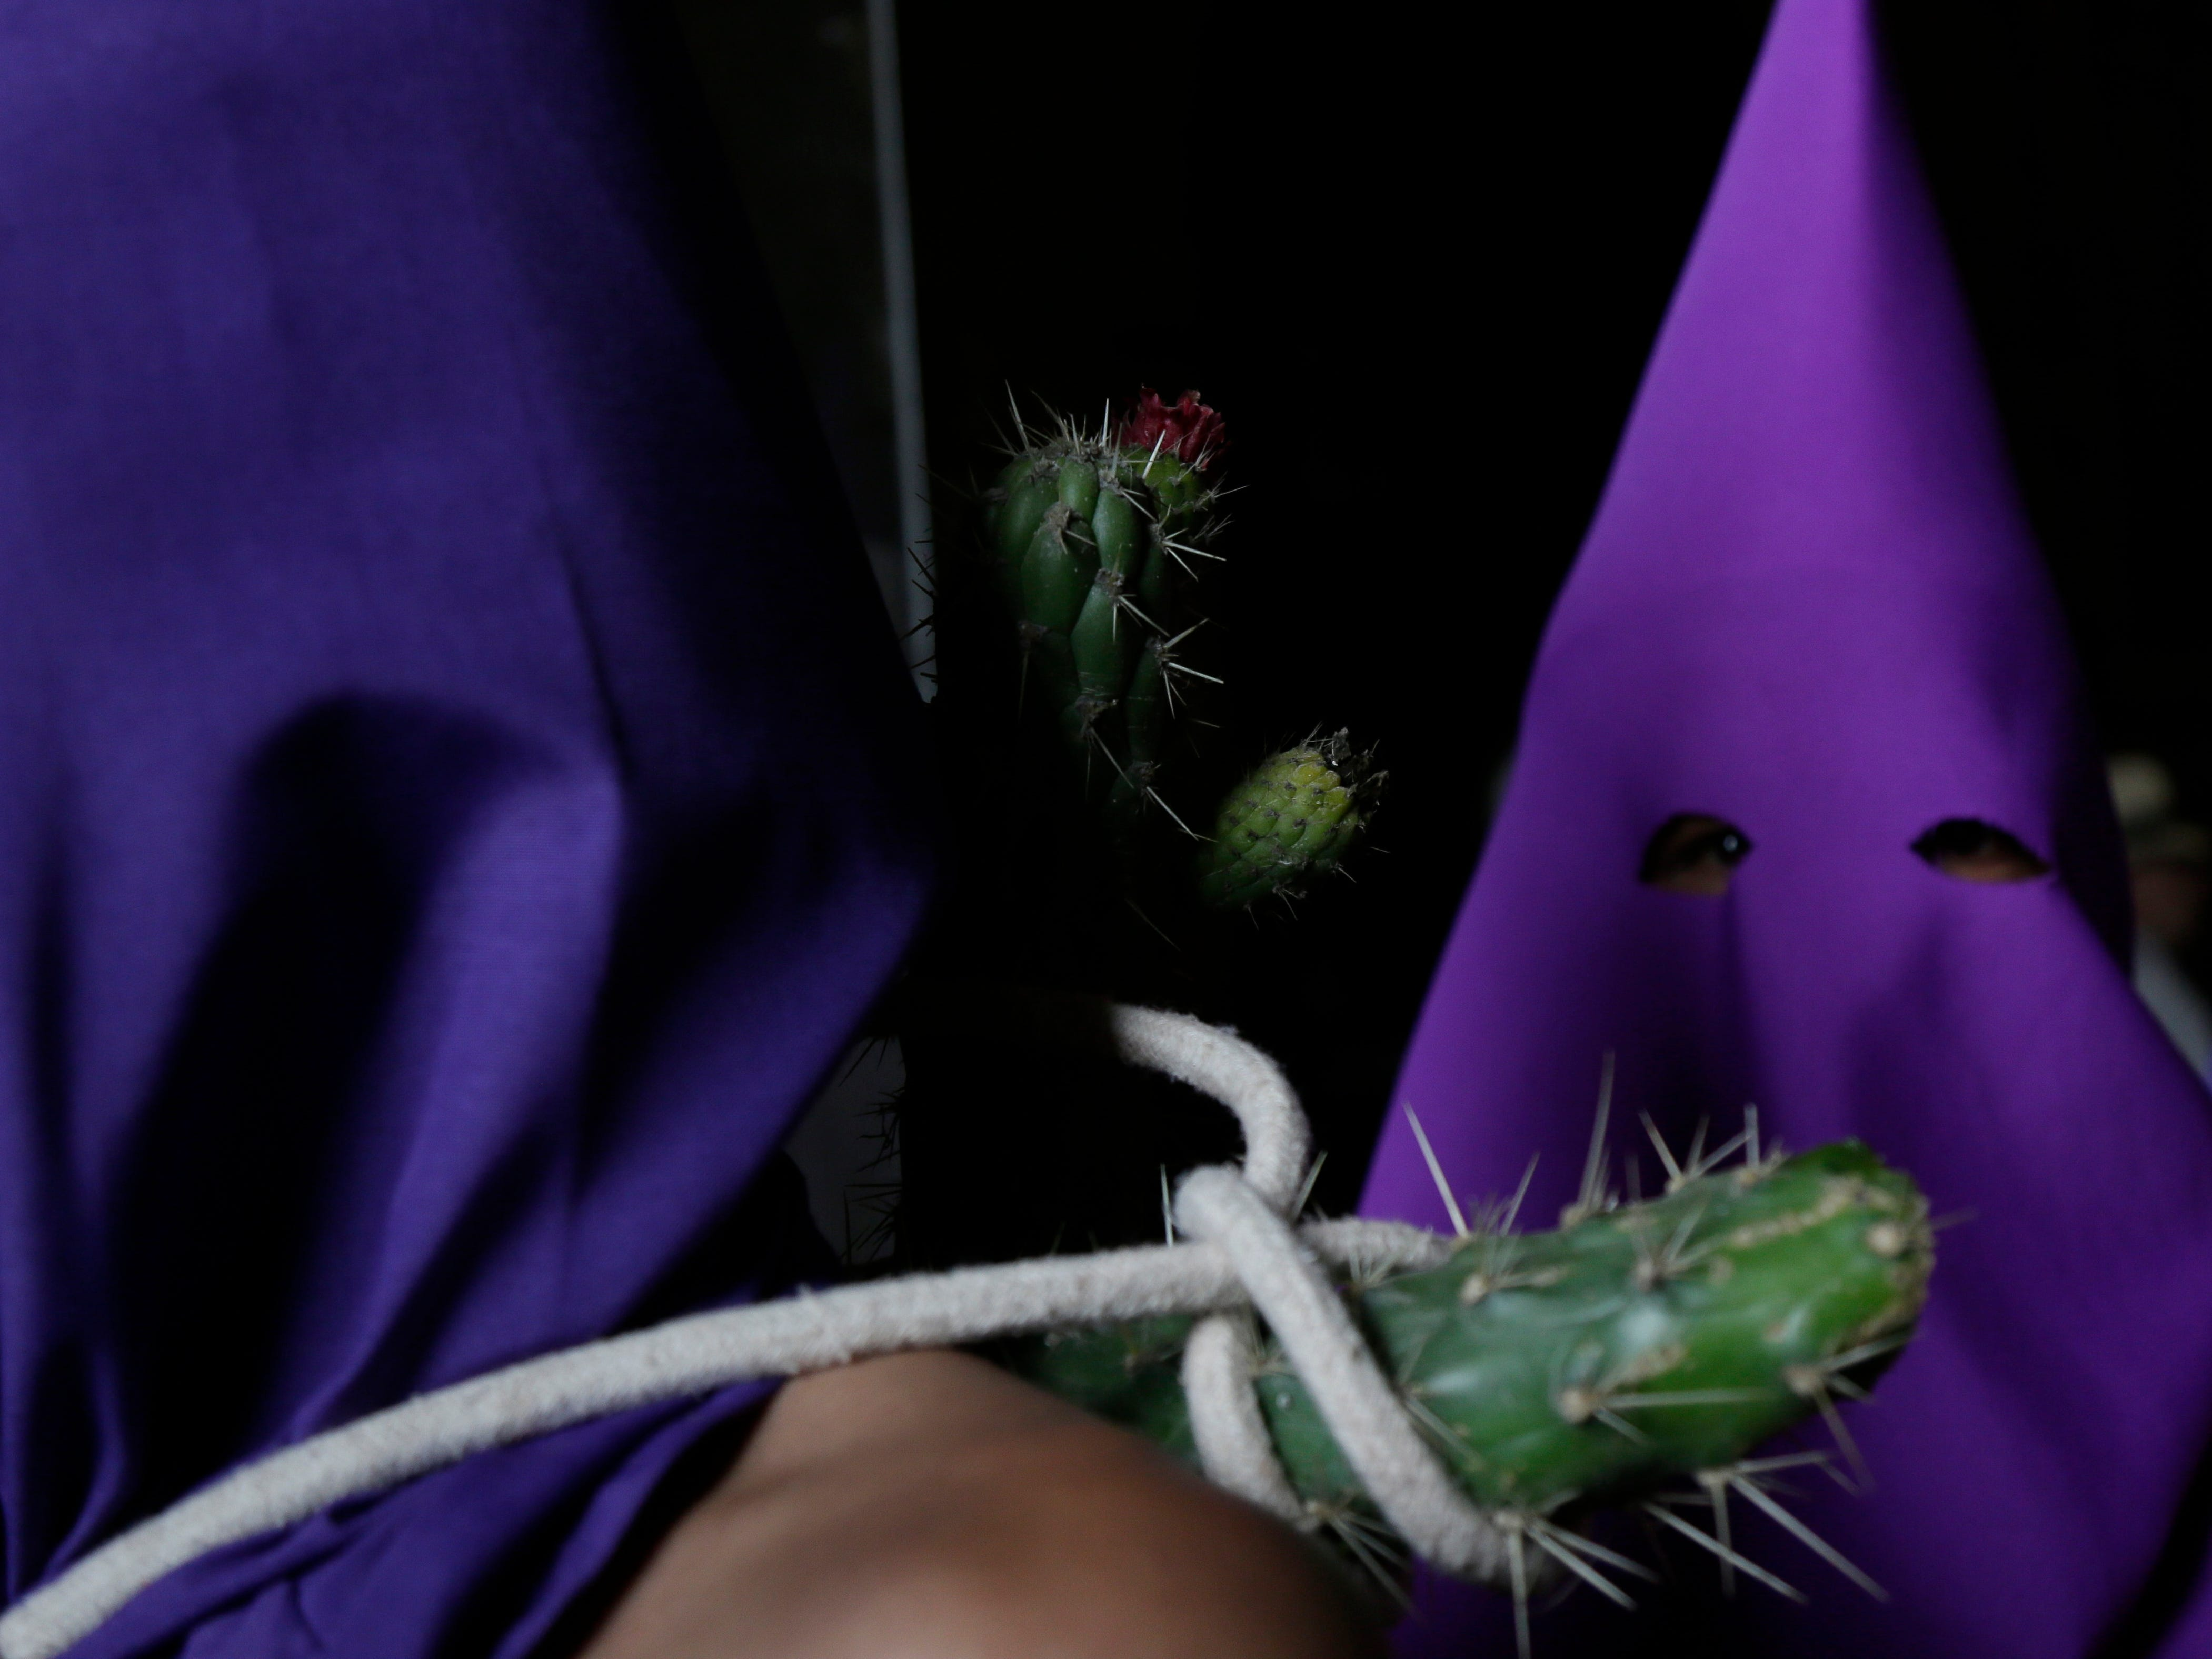 Hooded penitents prick themselves with cactus as they leave San Francisco church during the Jesus del Gran Poder procession on Good Friday in Quito, Ecuador, Friday, April 19, 2019. Christians all over the world attend mock crucifixions and passion plays that mark the day Jesus was crucified, known to Christians as Good Friday.